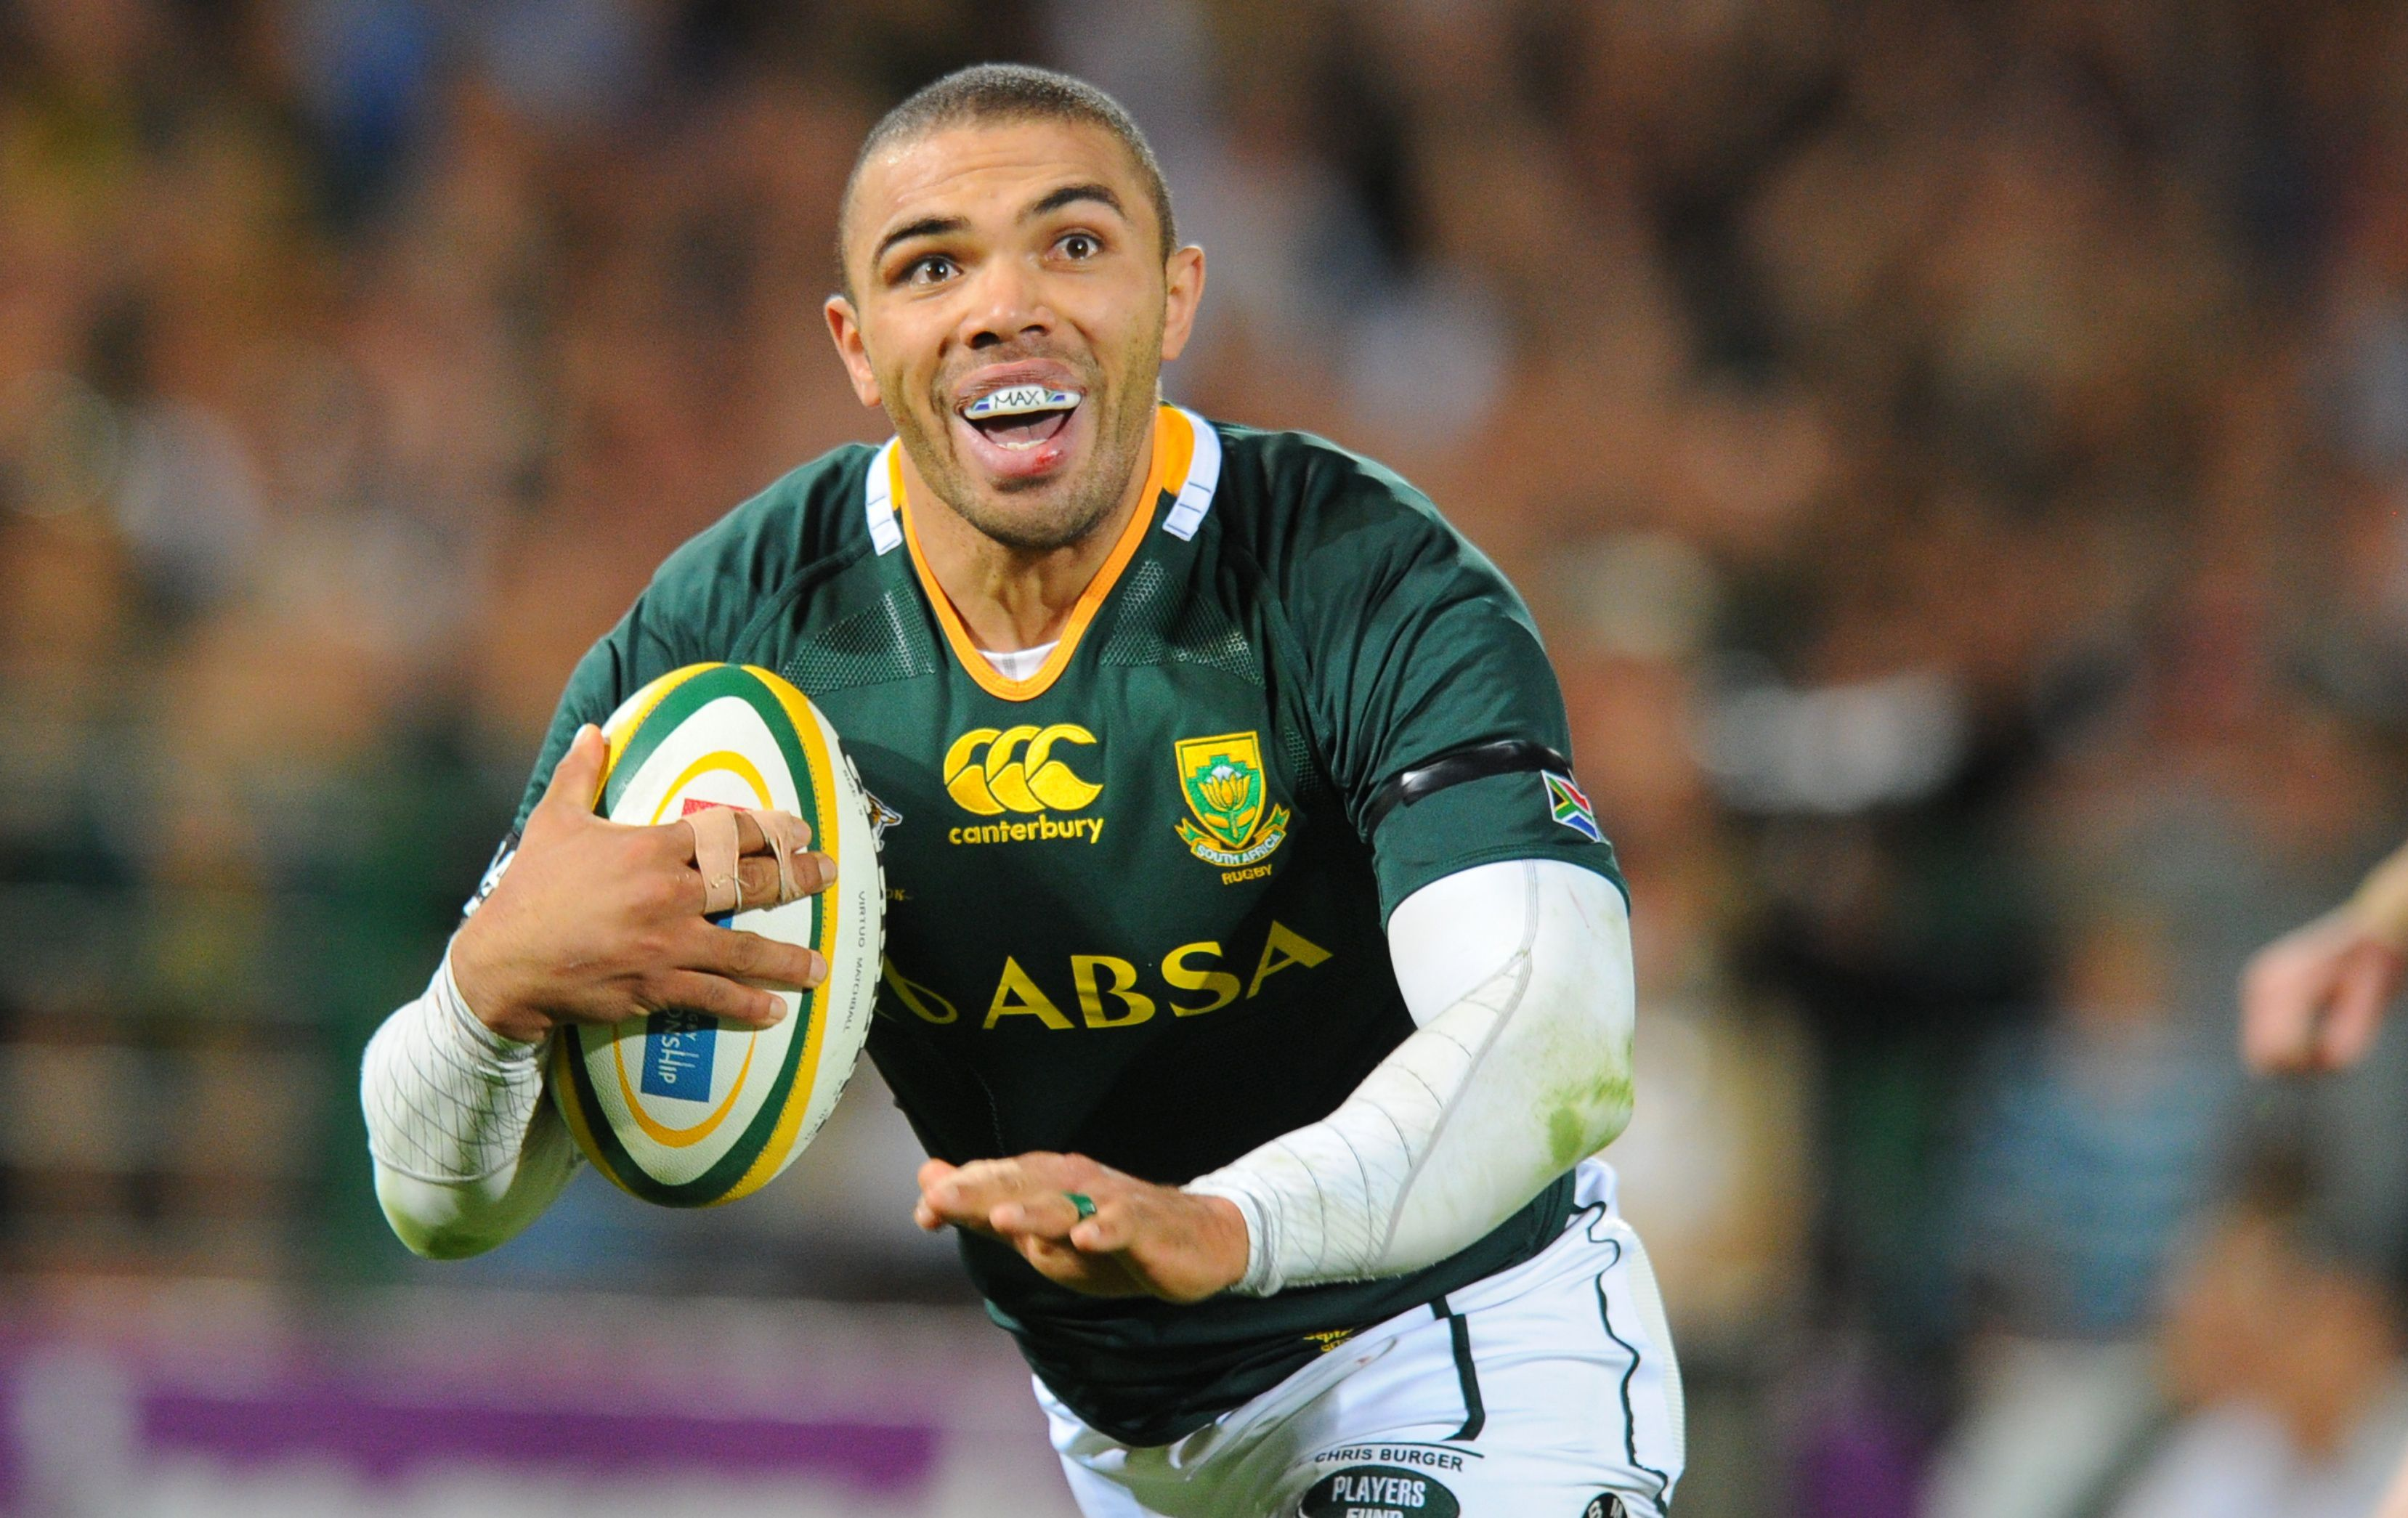 Bryan Habana Coloured Orld Class Rugby Player From South Africa Rugby Players South African Rugby World Rugby